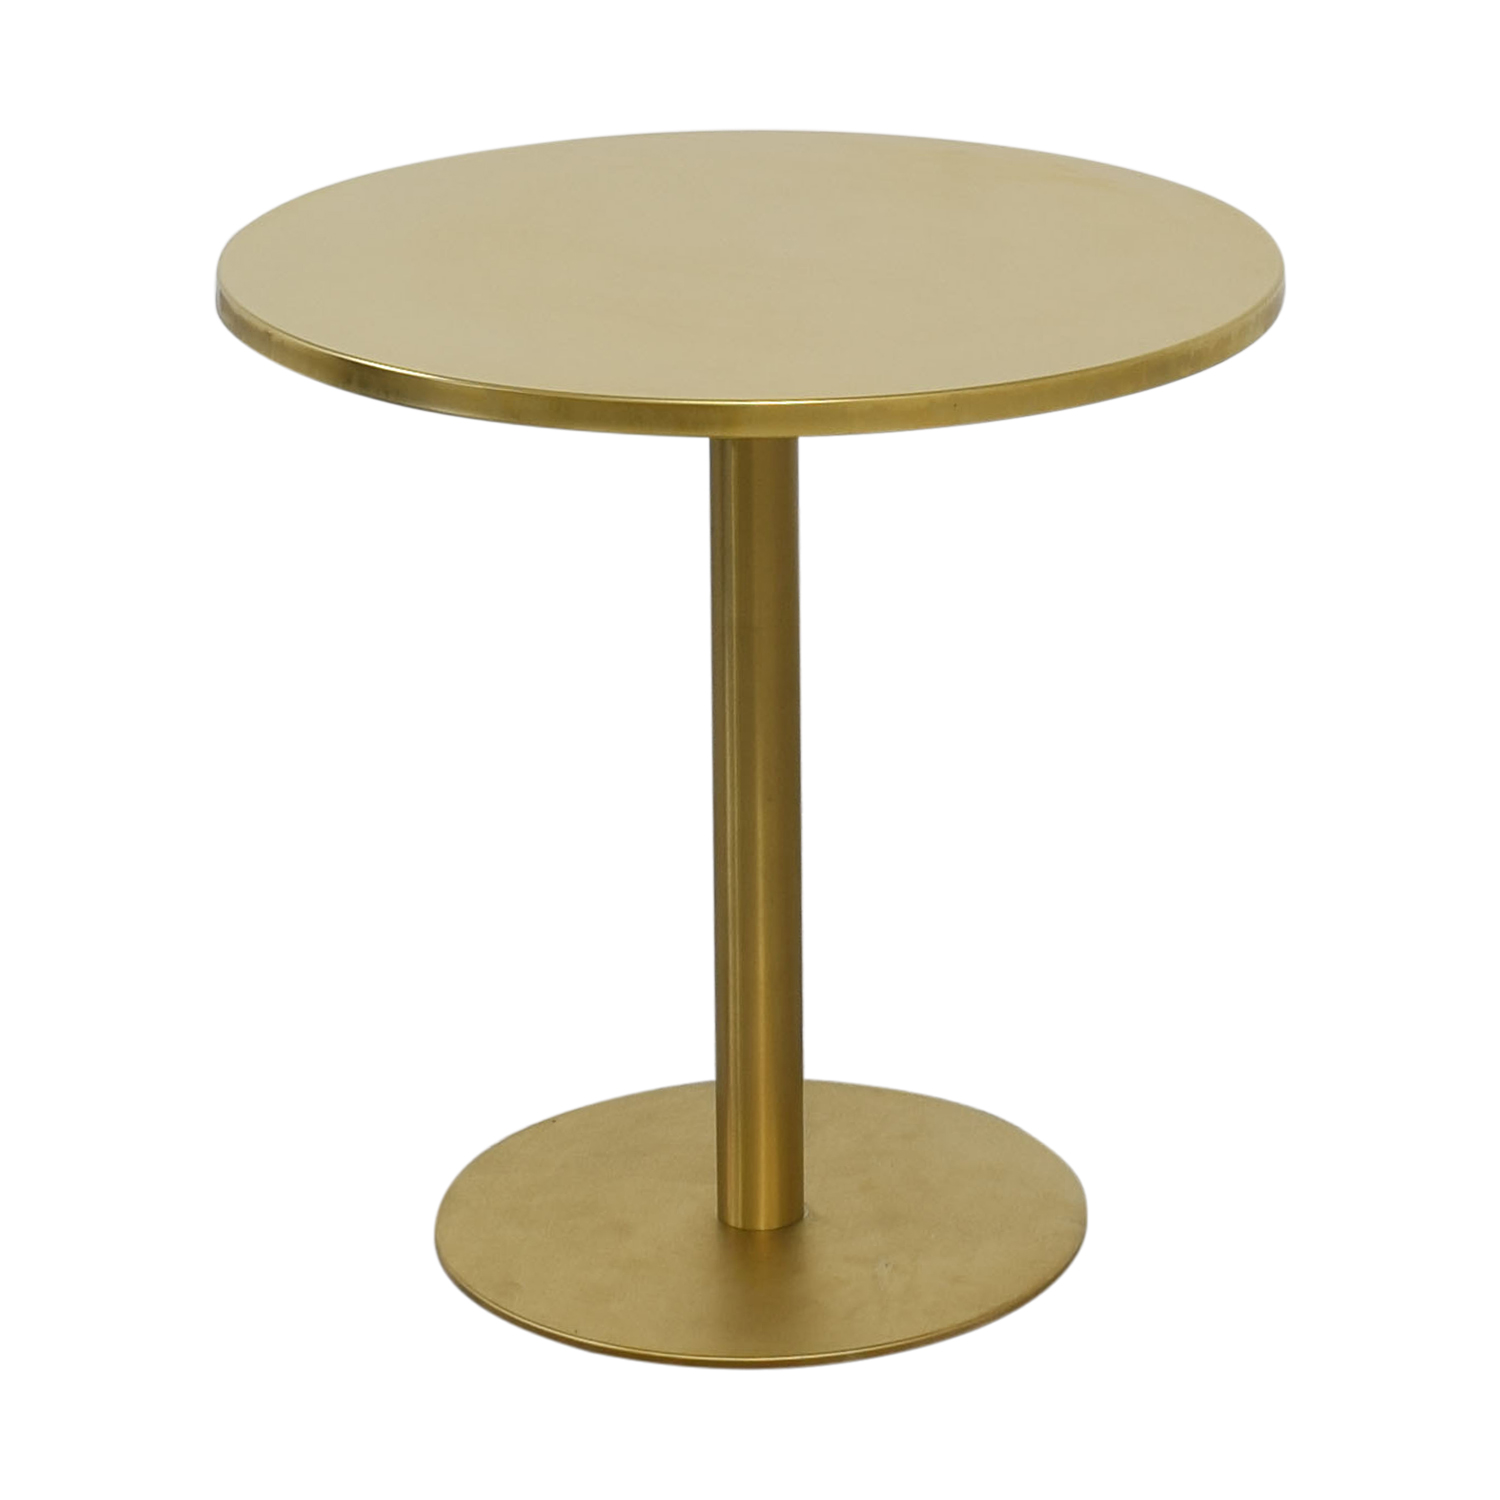 CB2 Watermark Bistro Dining Table sale